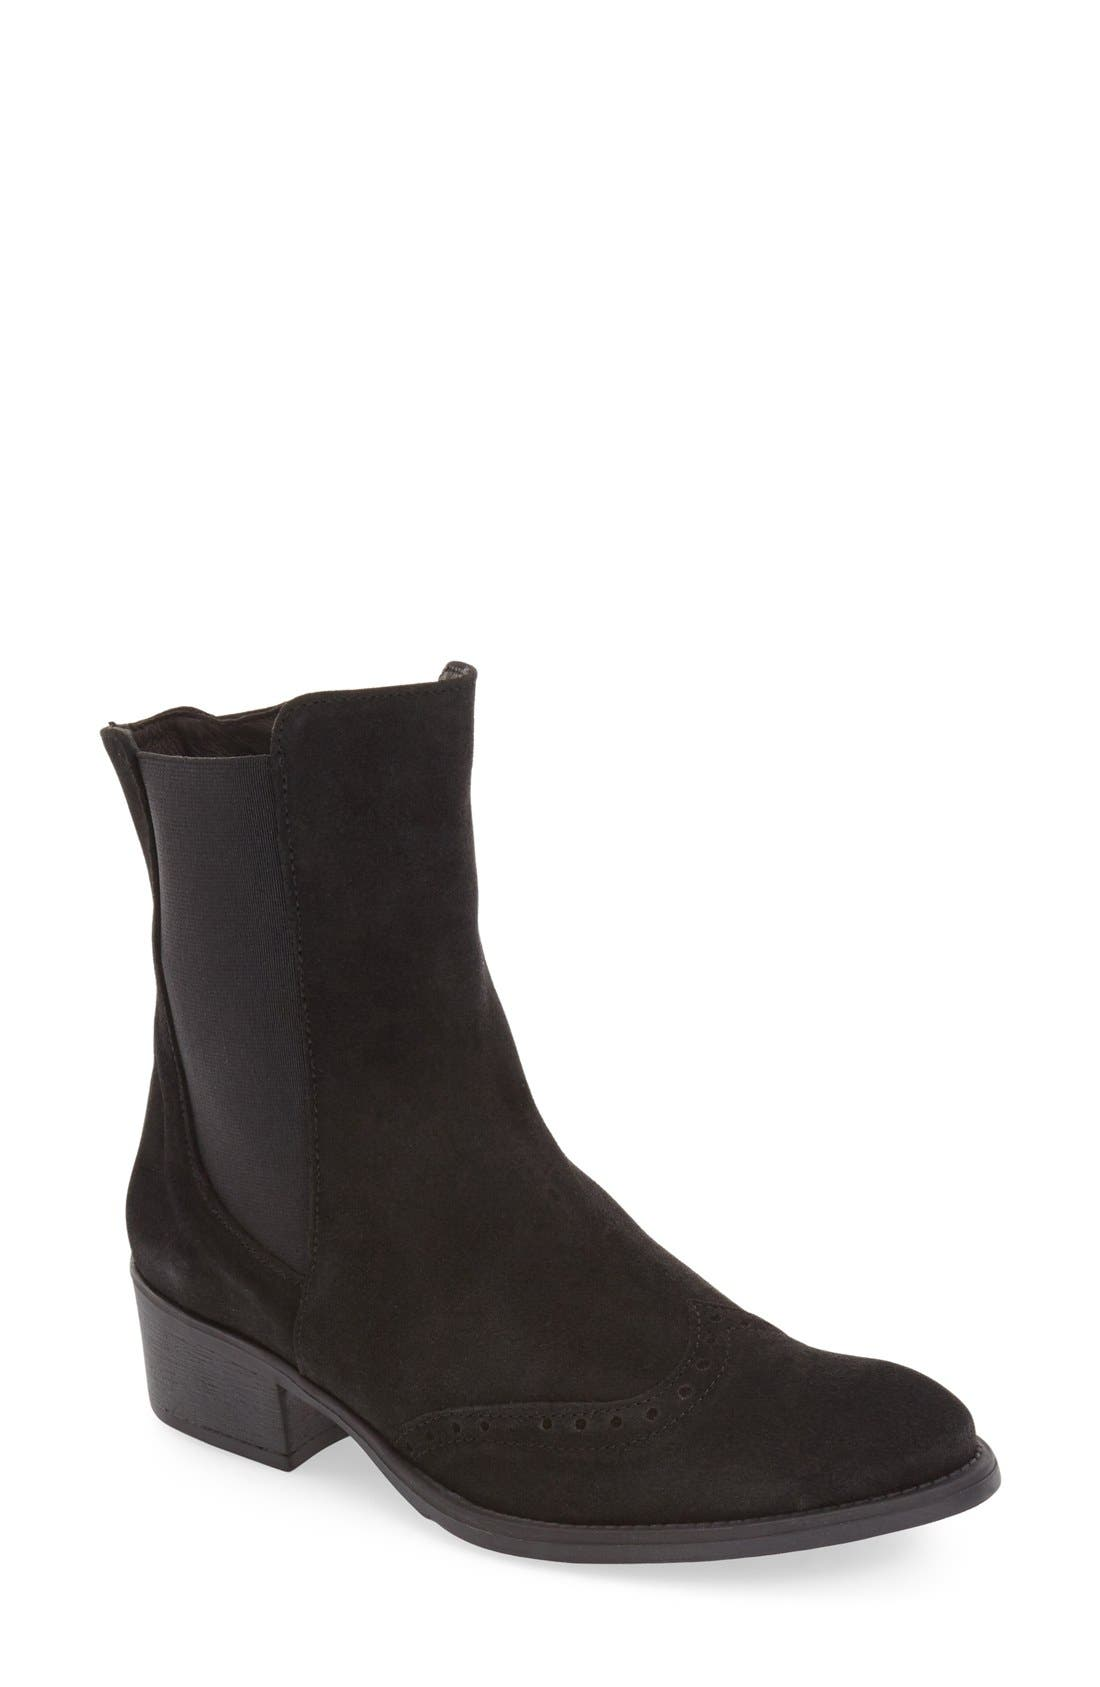 'Trieste' Chelsea Boot,                             Main thumbnail 1, color,